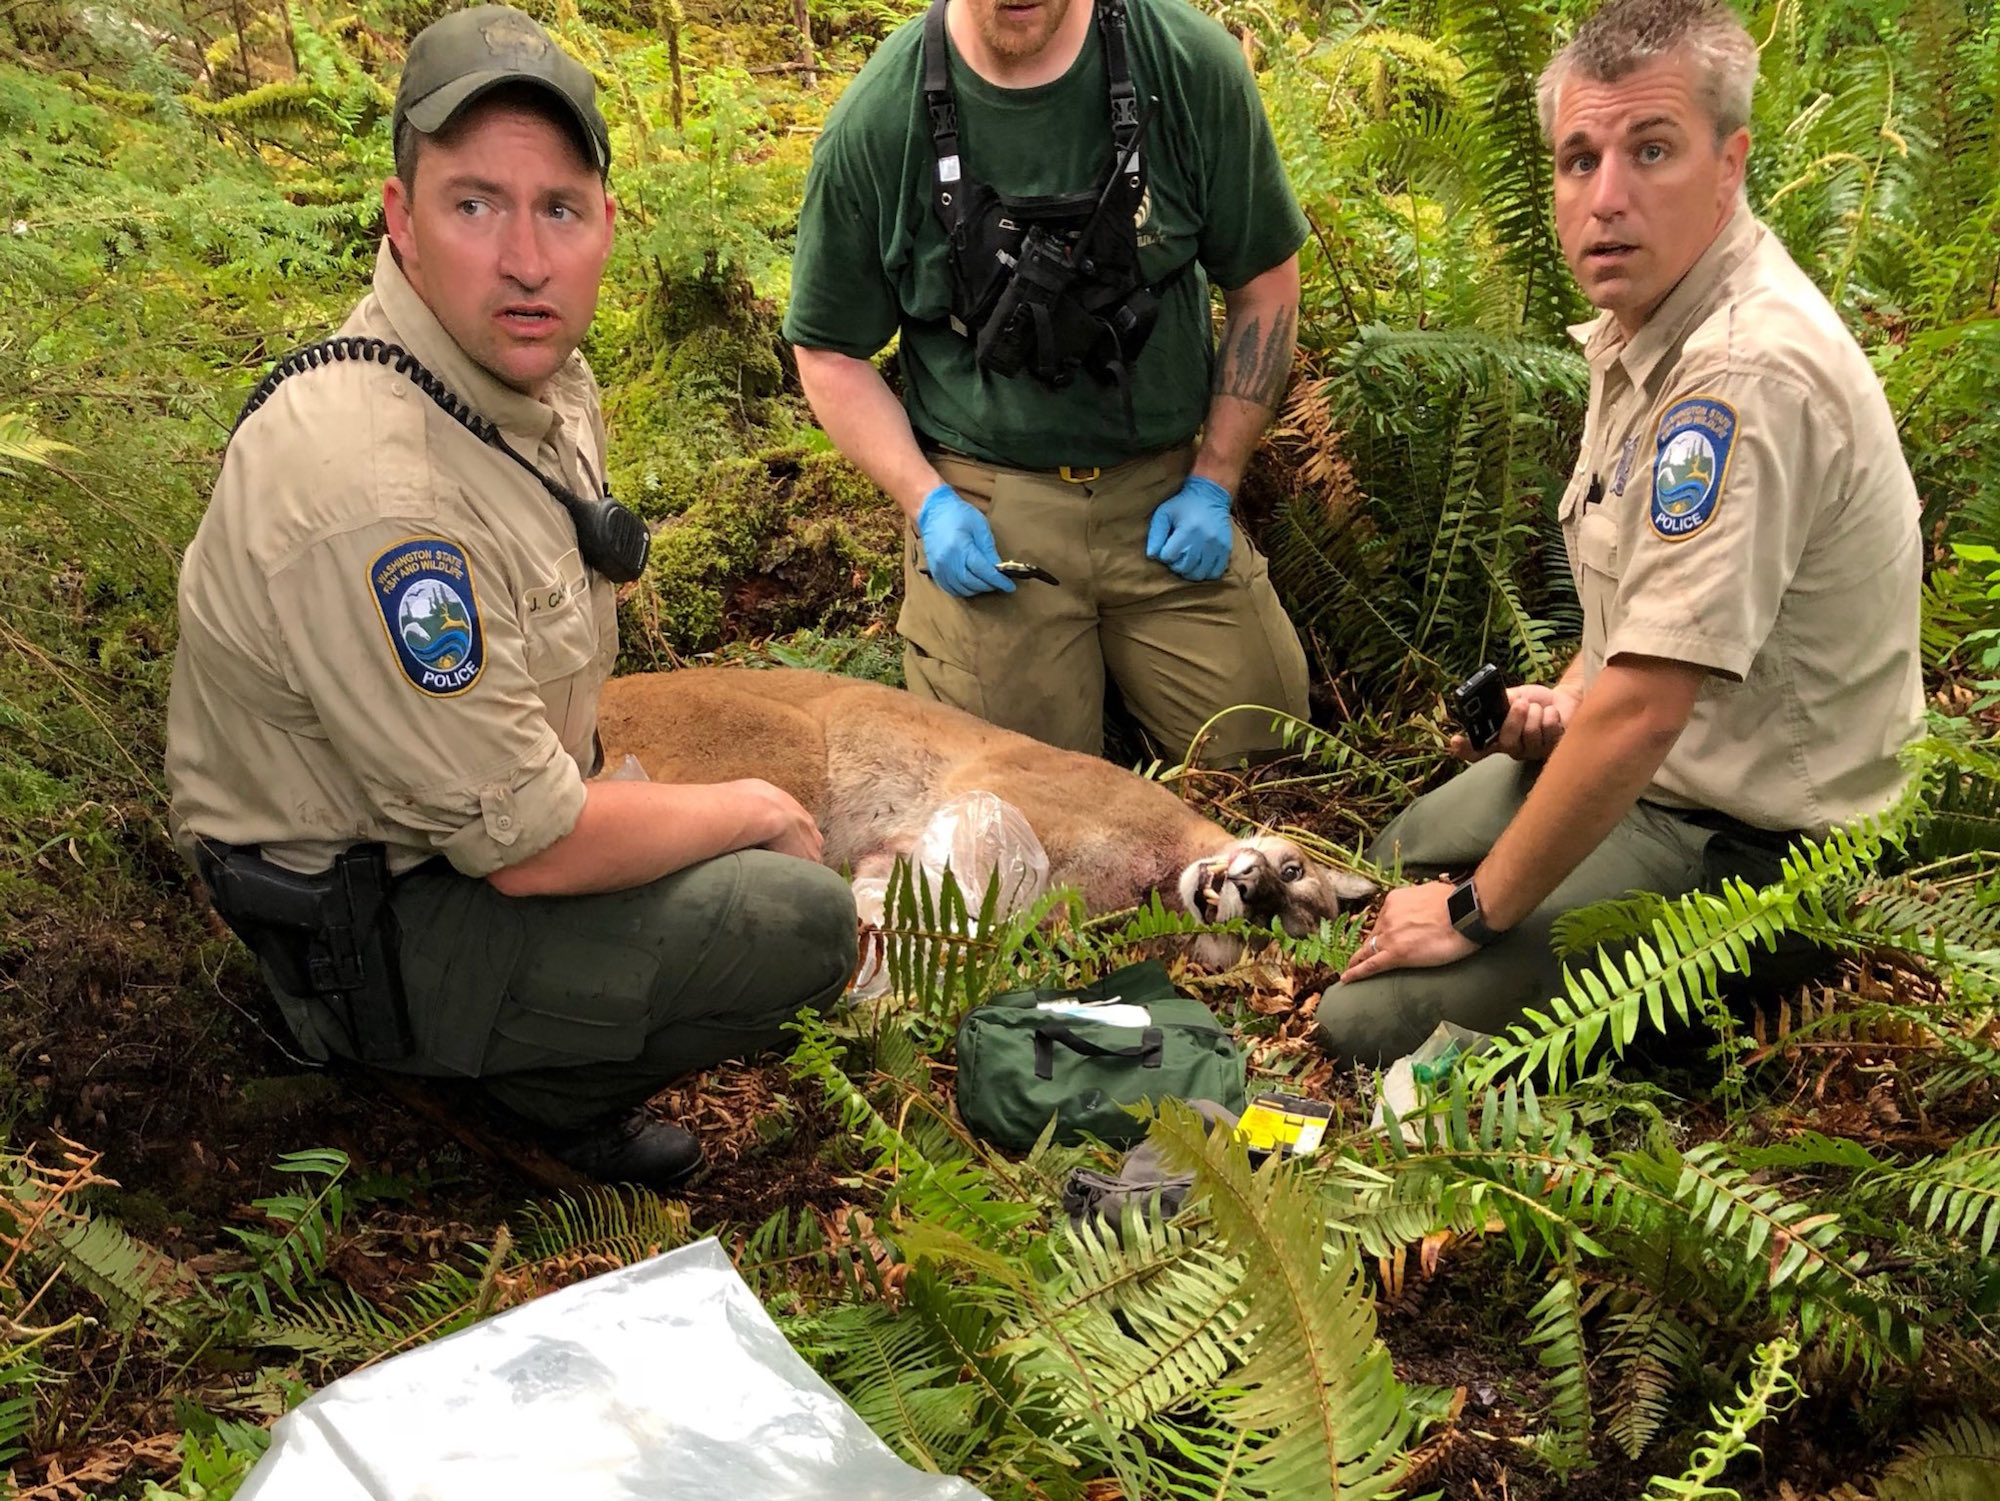 A cougar suspected of killing a mountain biker